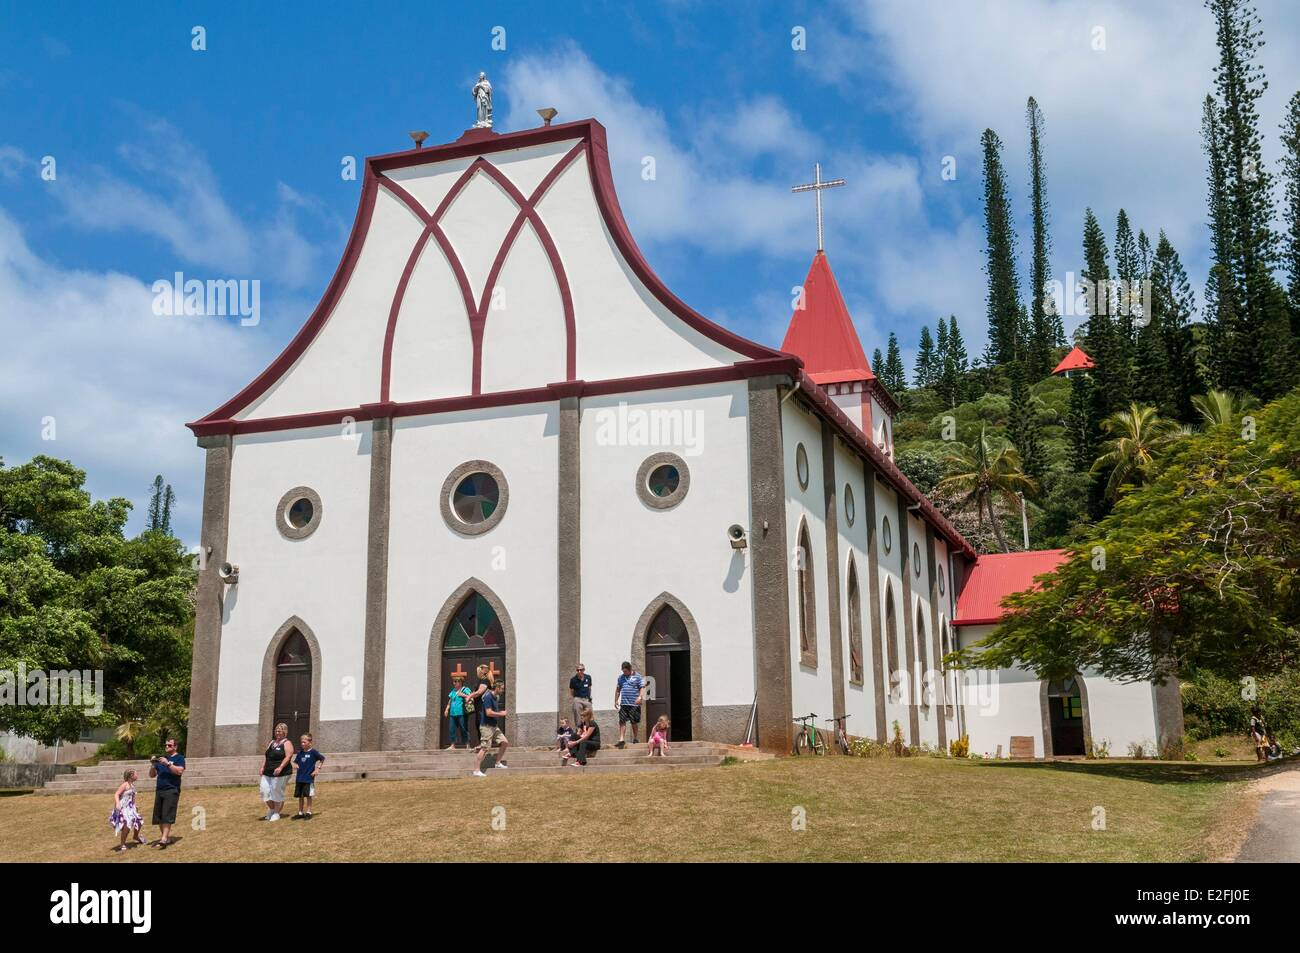 France, New Caledonia, Ile des Pins, church of Vao built by convicts in 1903 - Stock Image